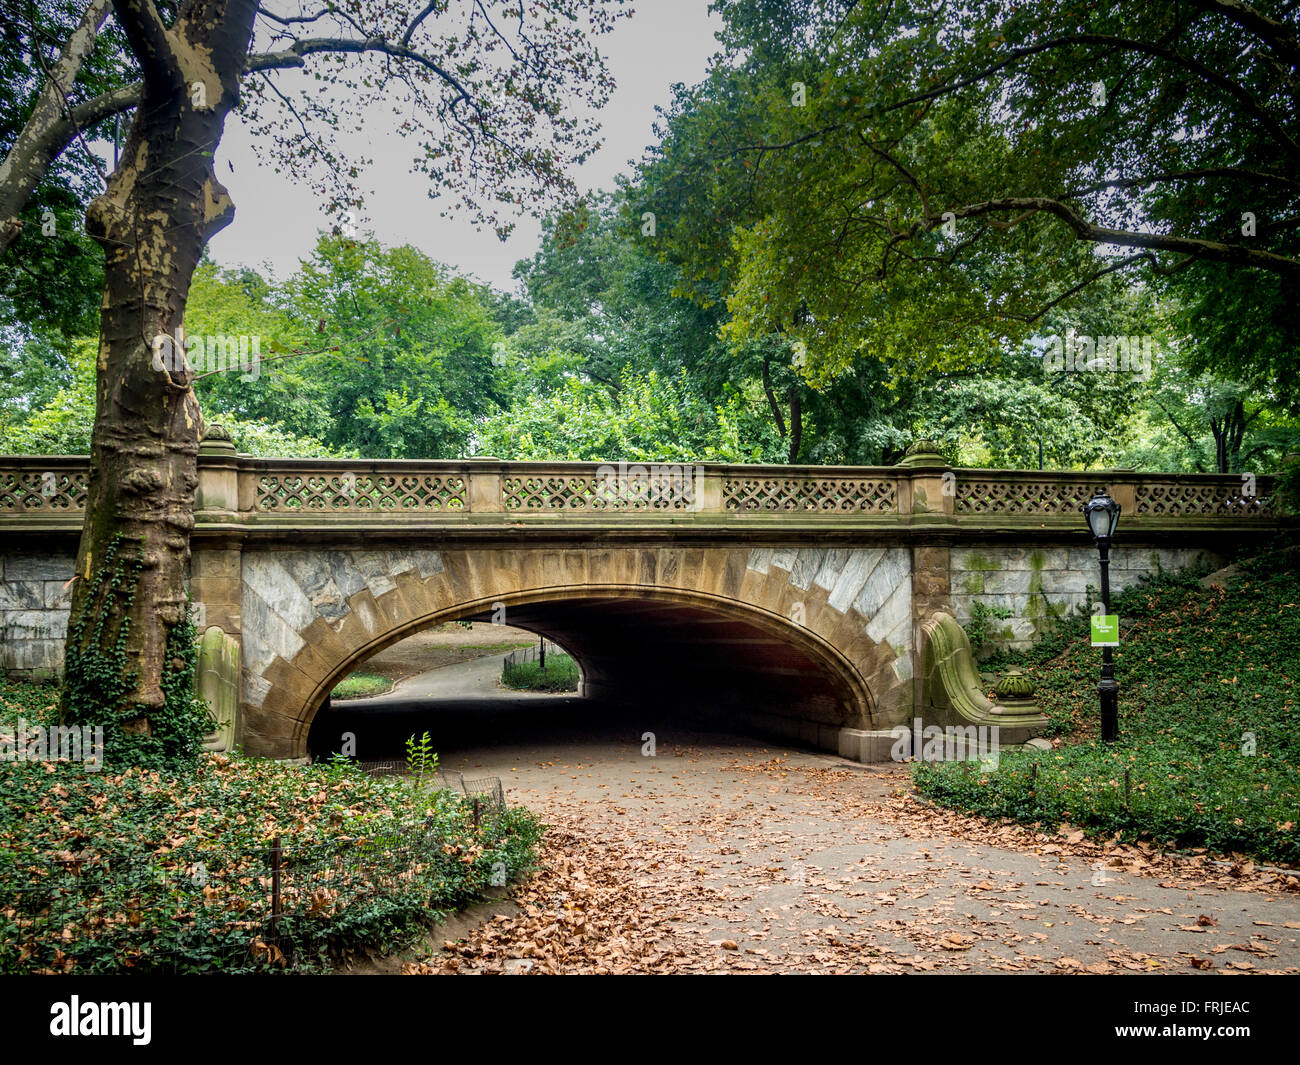 Greyshot Arch, Central Park, West Side between 61st and 62nd Streets. New York City, USA. - Stock Image